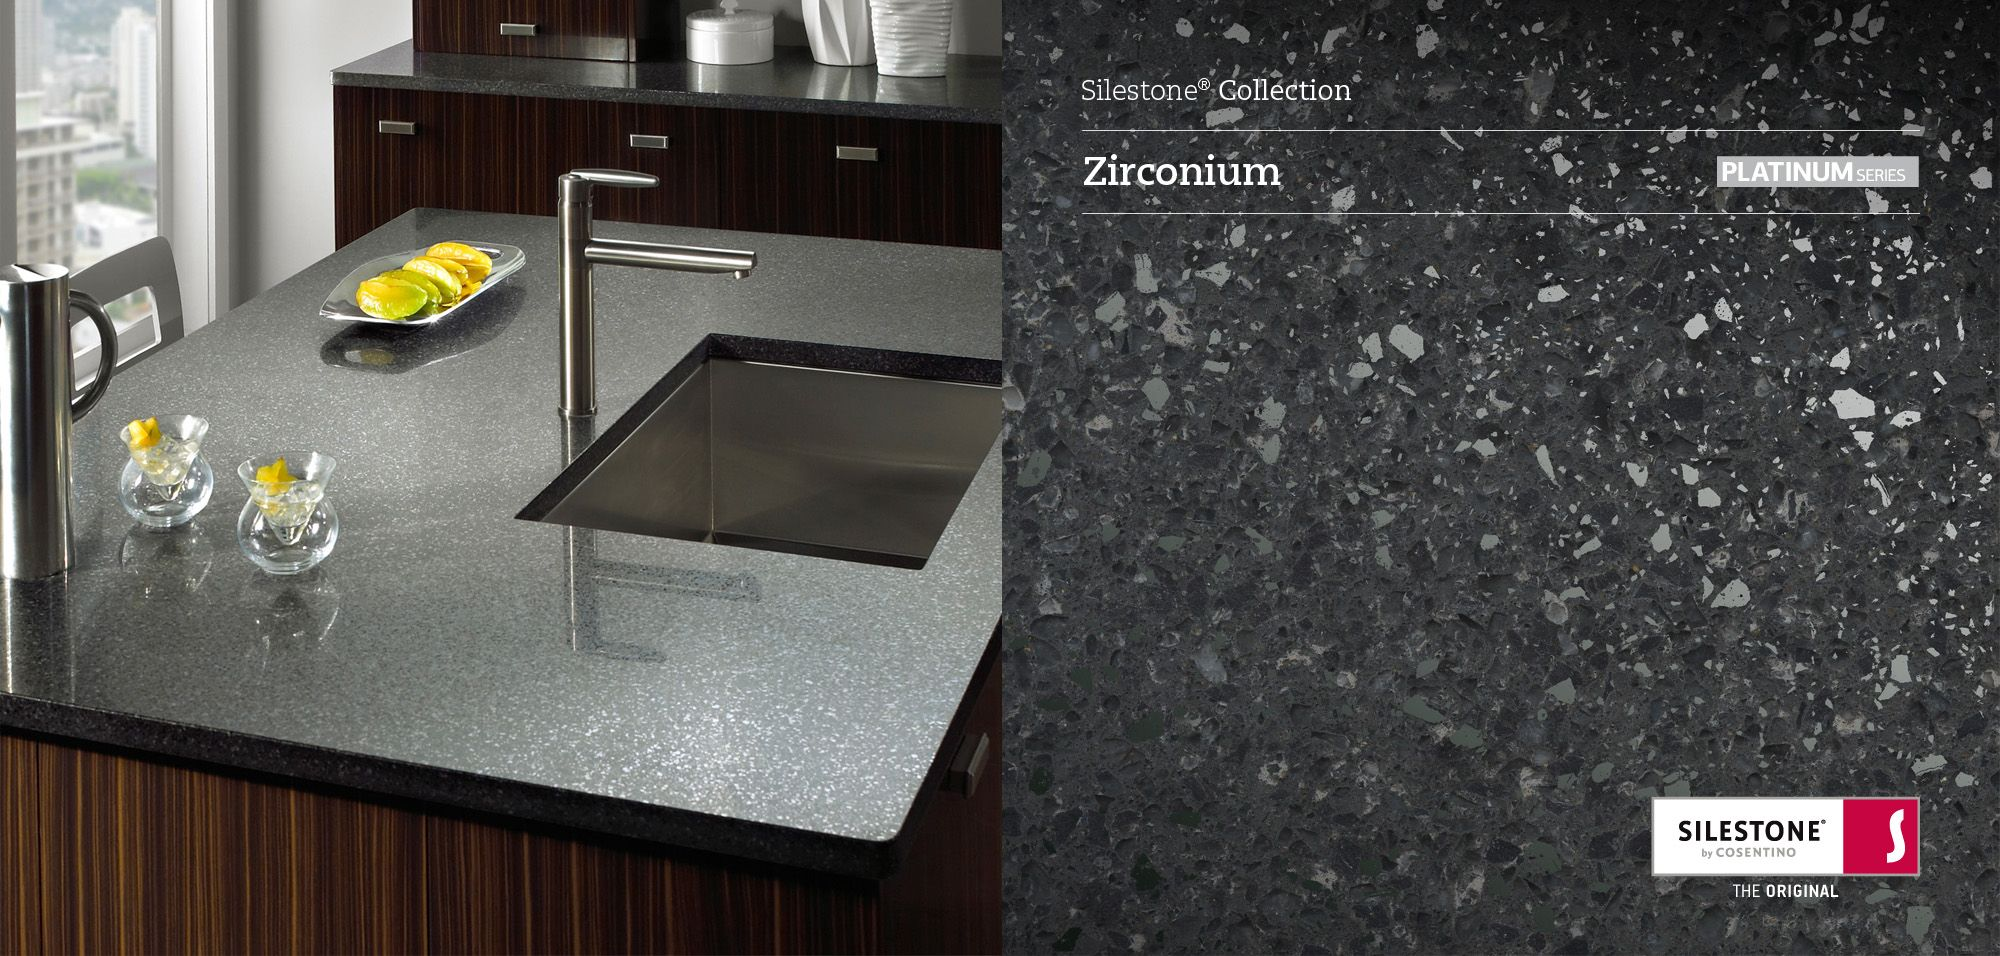 Silestone Zirconium | Silestone Collection | Pinterest | Encimeras ...